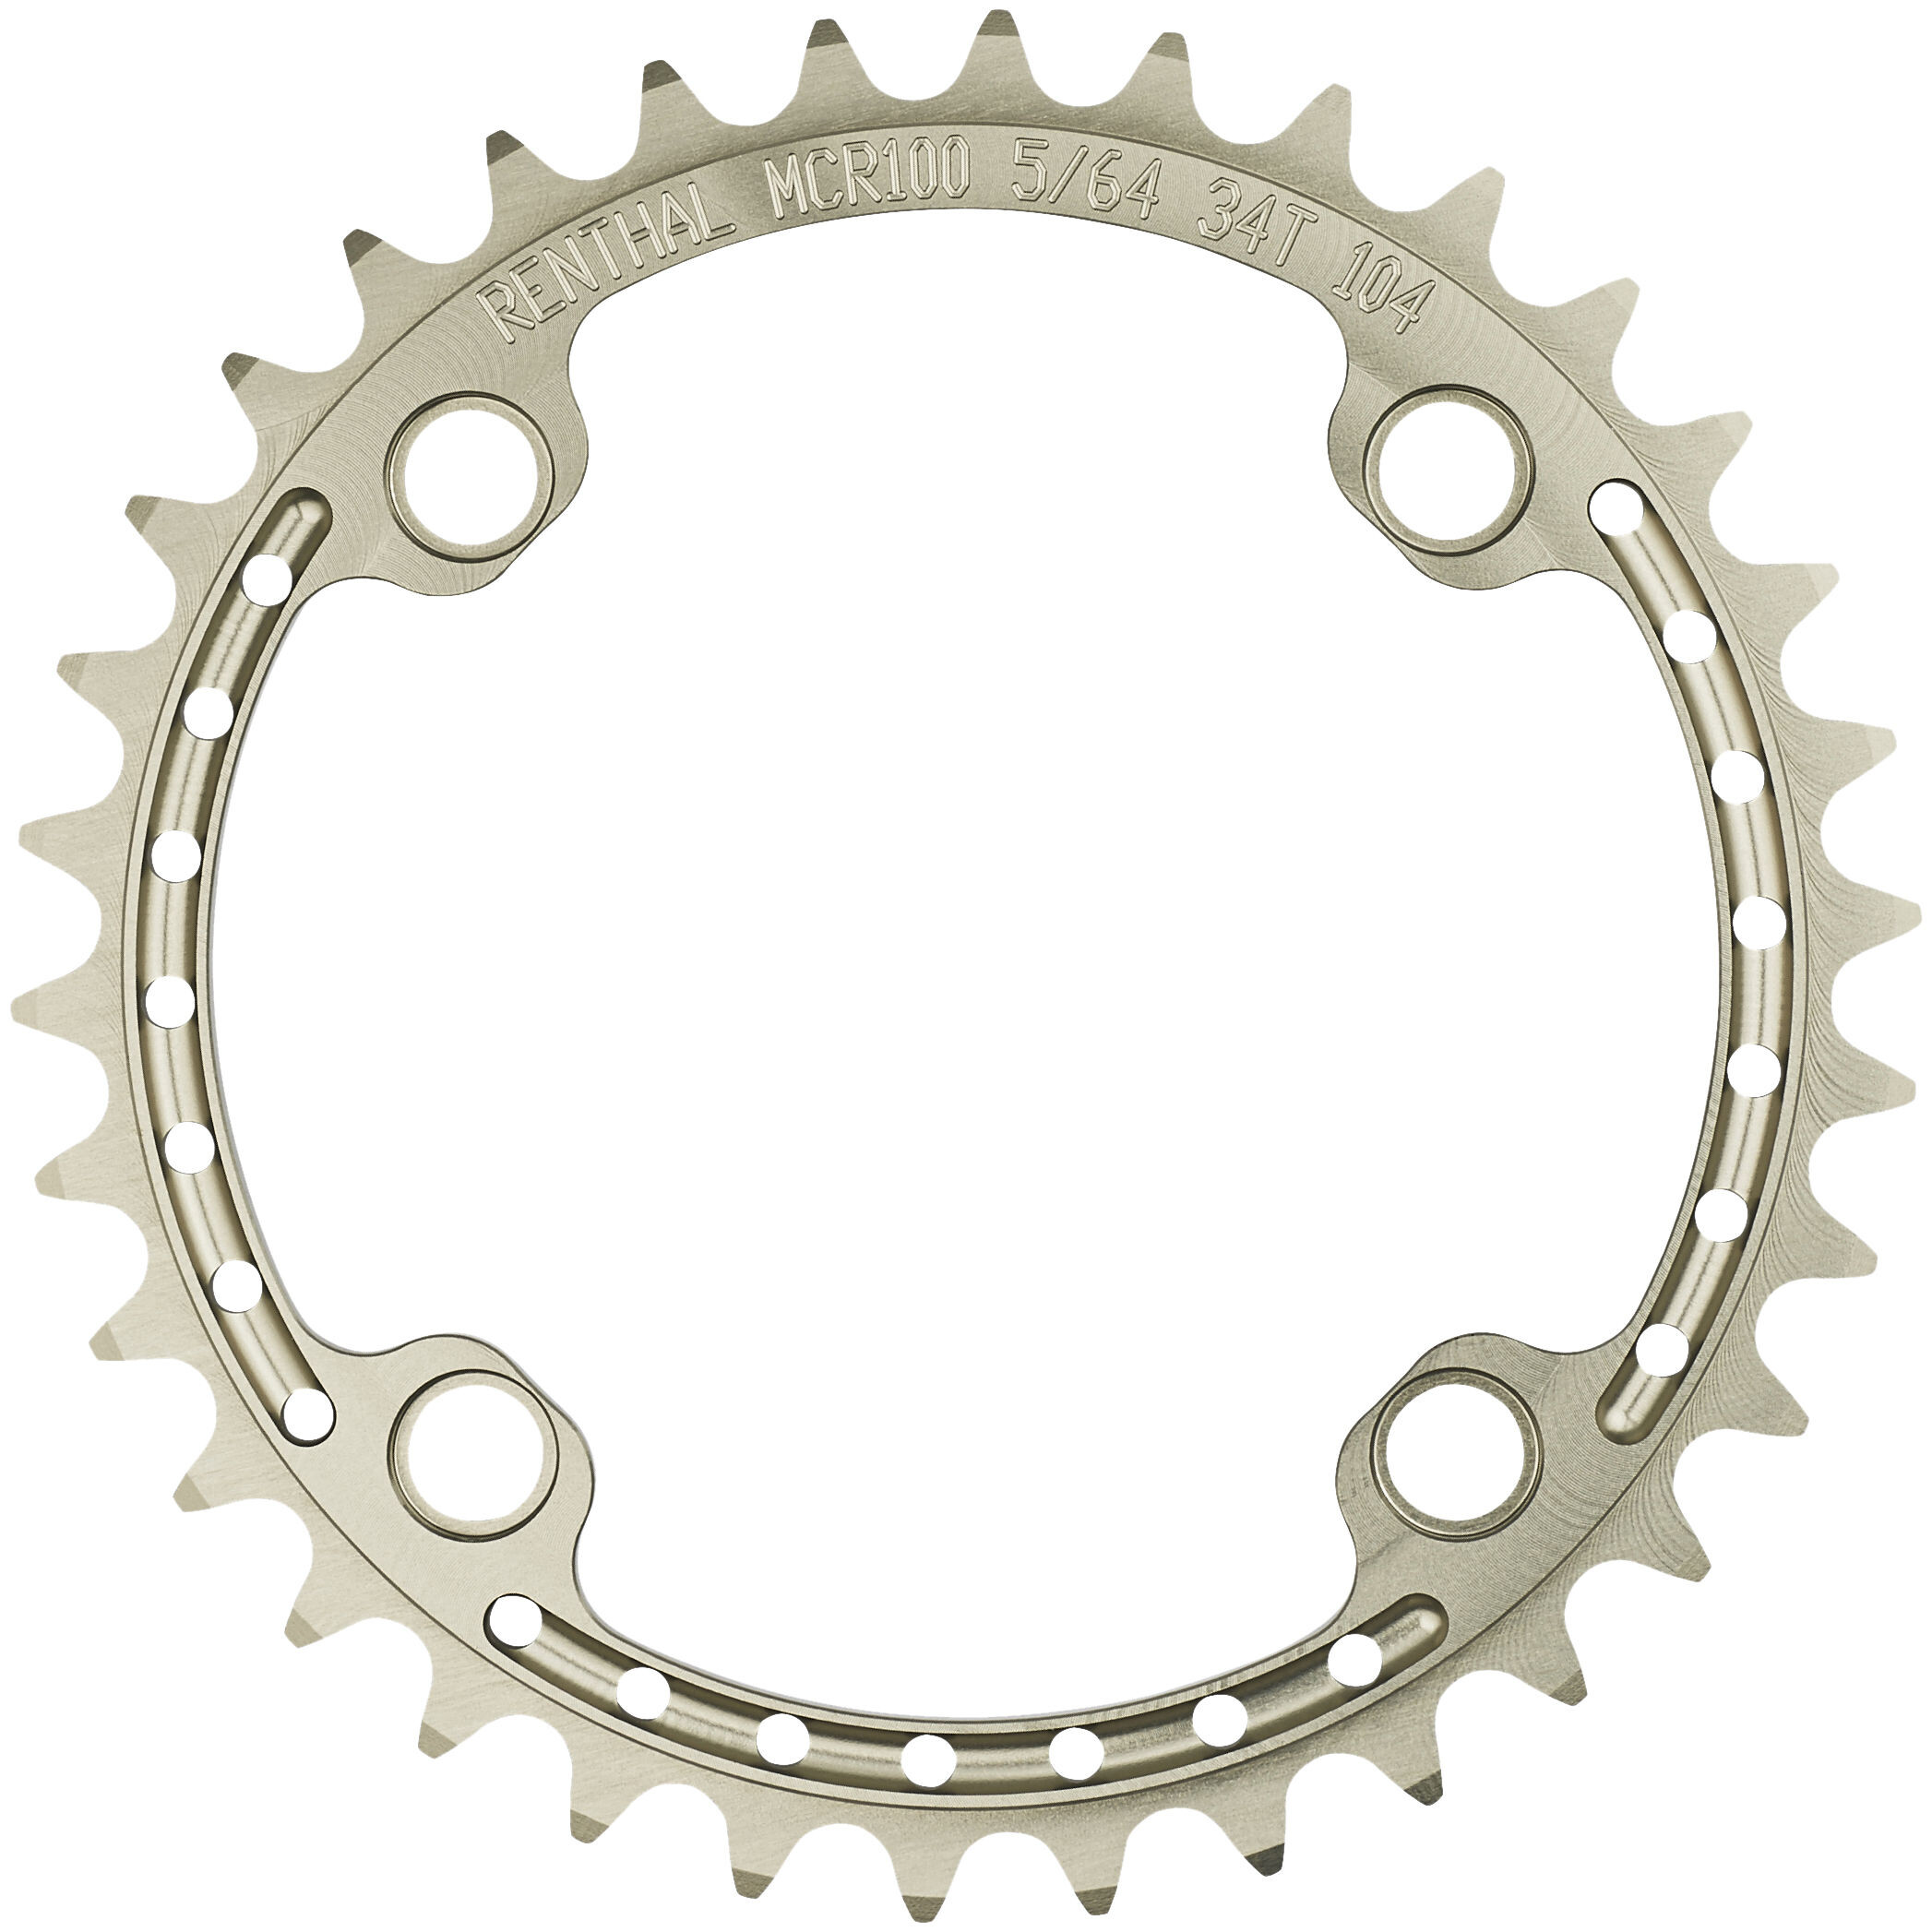 Renthal SR4 Klinge 8/9/10-speed 104 mm, gold (2019) | chainrings_component